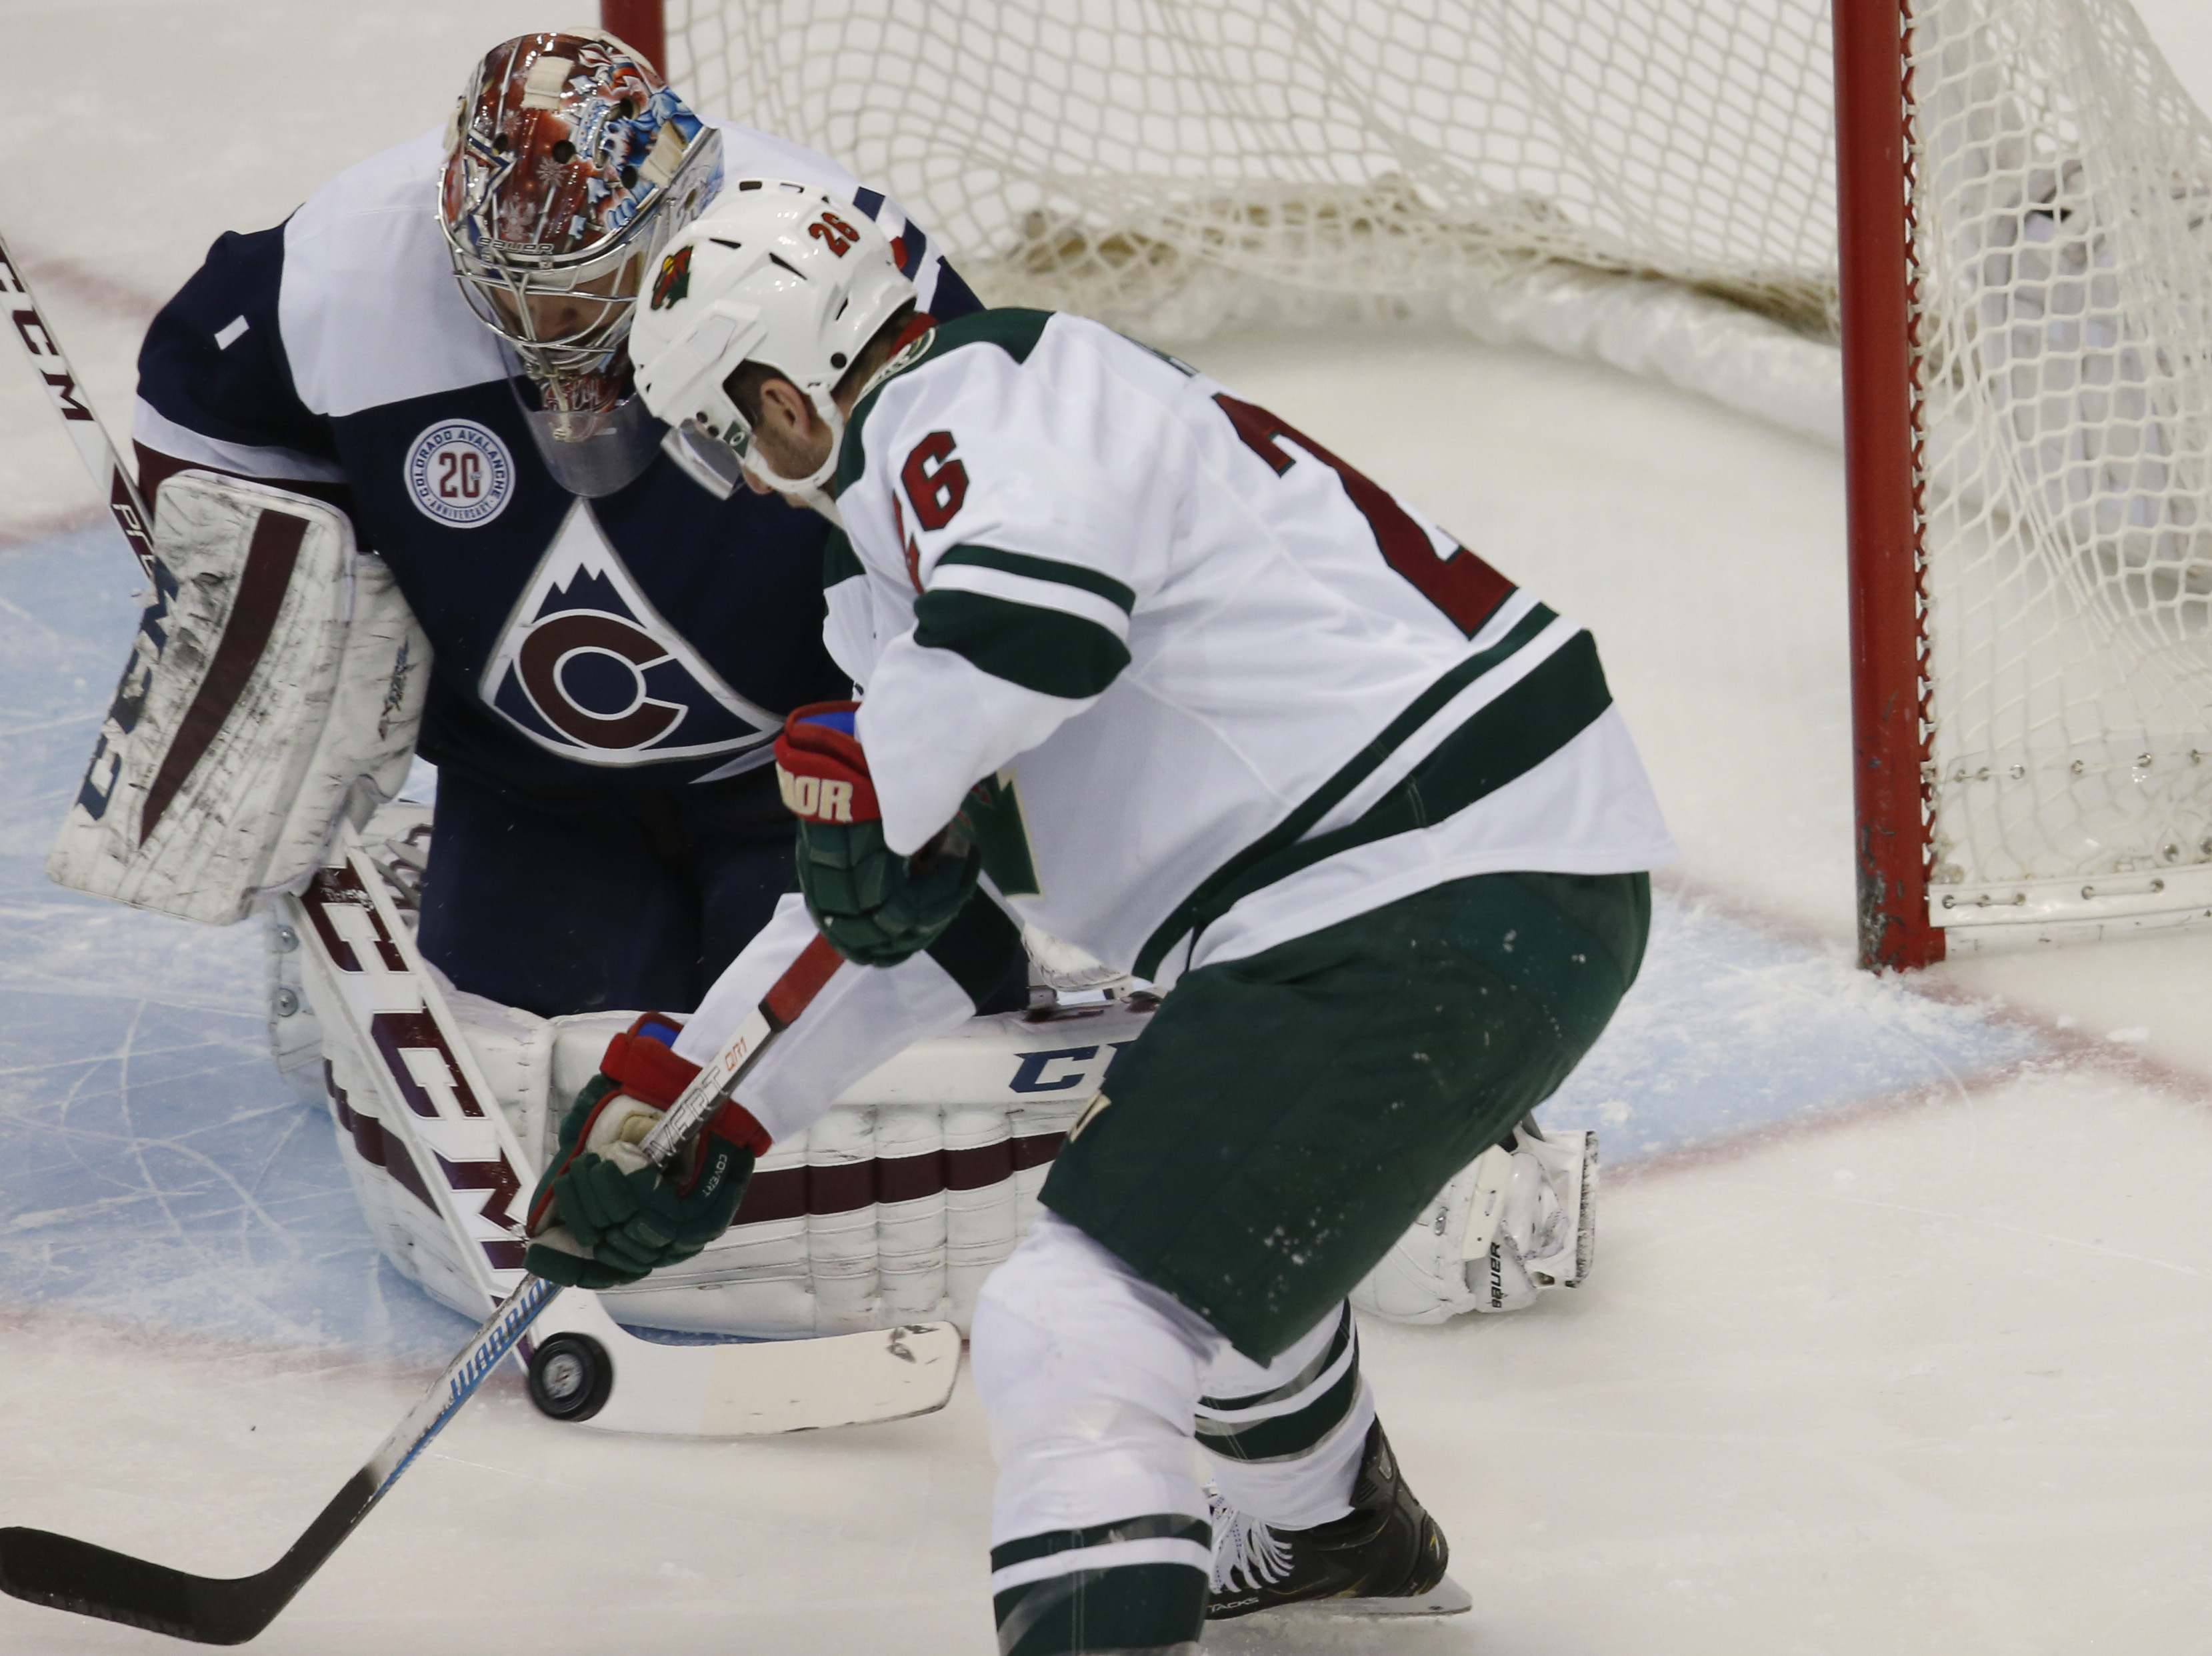 Minnesota Wild left wing Thomas Vanek, front, of Austria, directs a shot at Colorado Avalanche goalie Semyon Varlamov, of Russia, in the first period of an NHL hockey game Saturday, March 26, 2016, in Denver. (AP Photo/David Zalubowski)